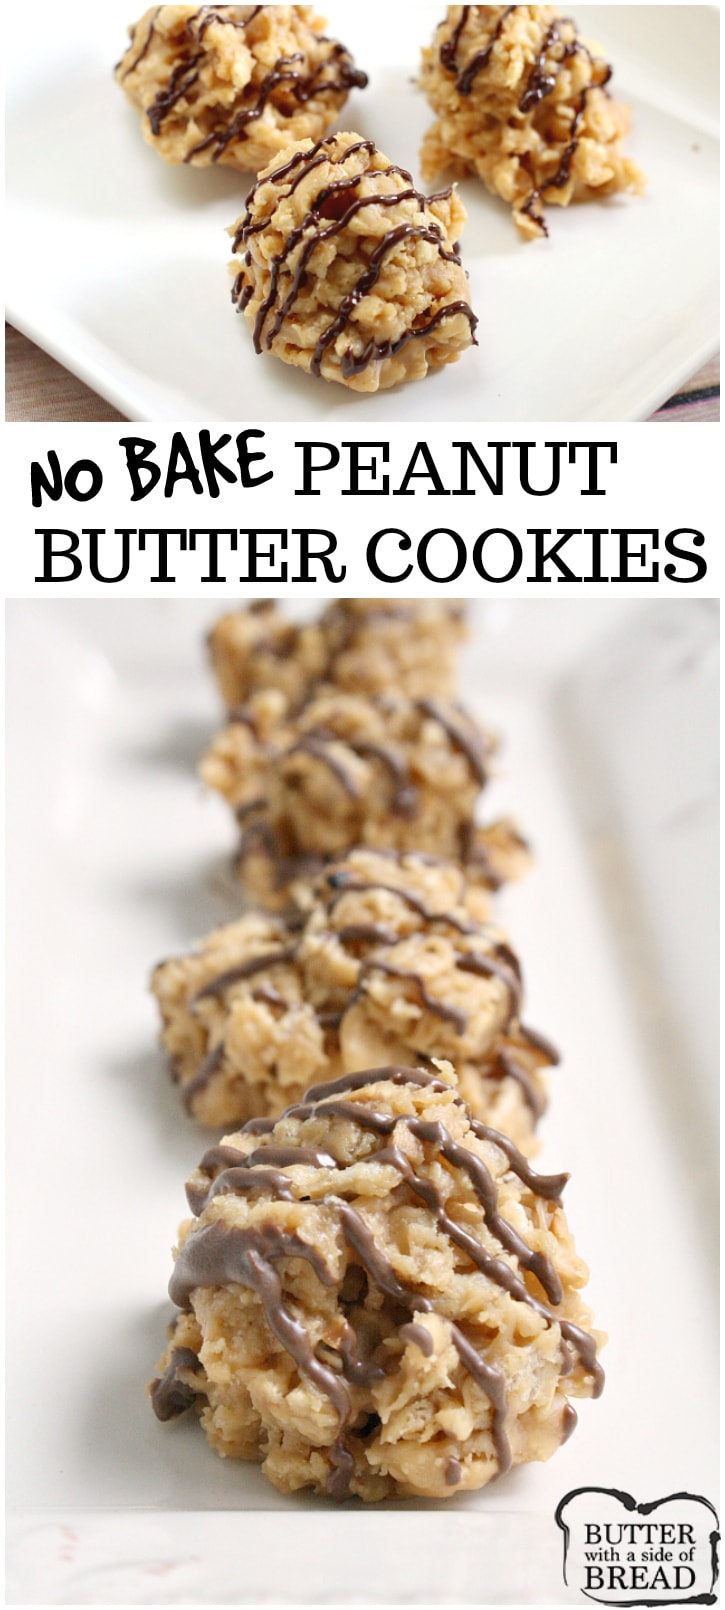 No-Bake Peanut Butter Cookies are crunchy, sweet and full of flavor. They only take a few minutes start to finish to make and EVERYONE loves them! Easy no-bake cookie recipe from Butter With A Side of Bread